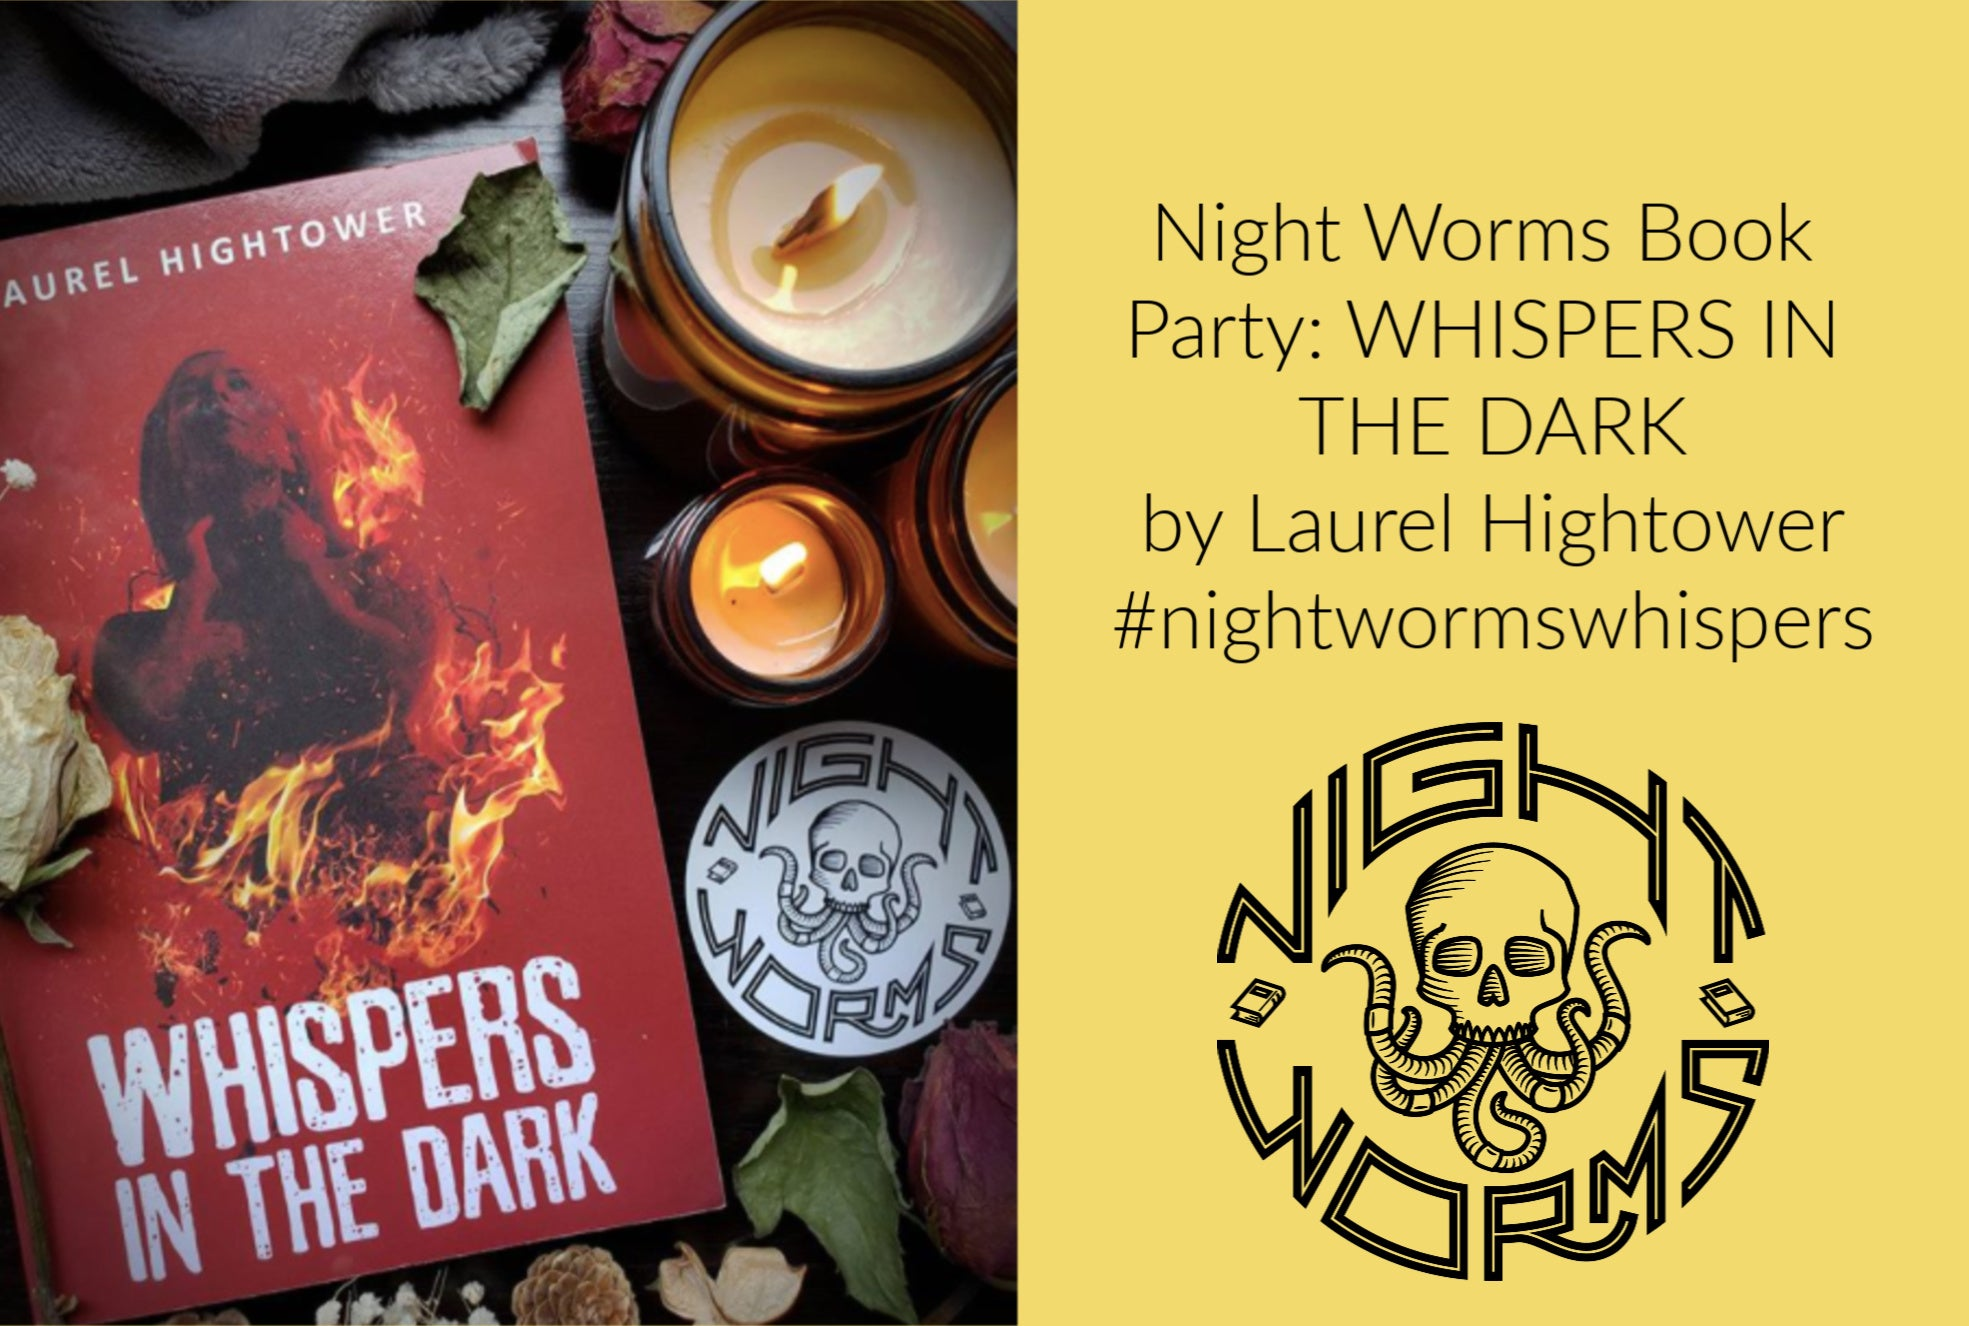 Night Worms Book Party: WHISPERS IN THE DARK by Laurel Hightower